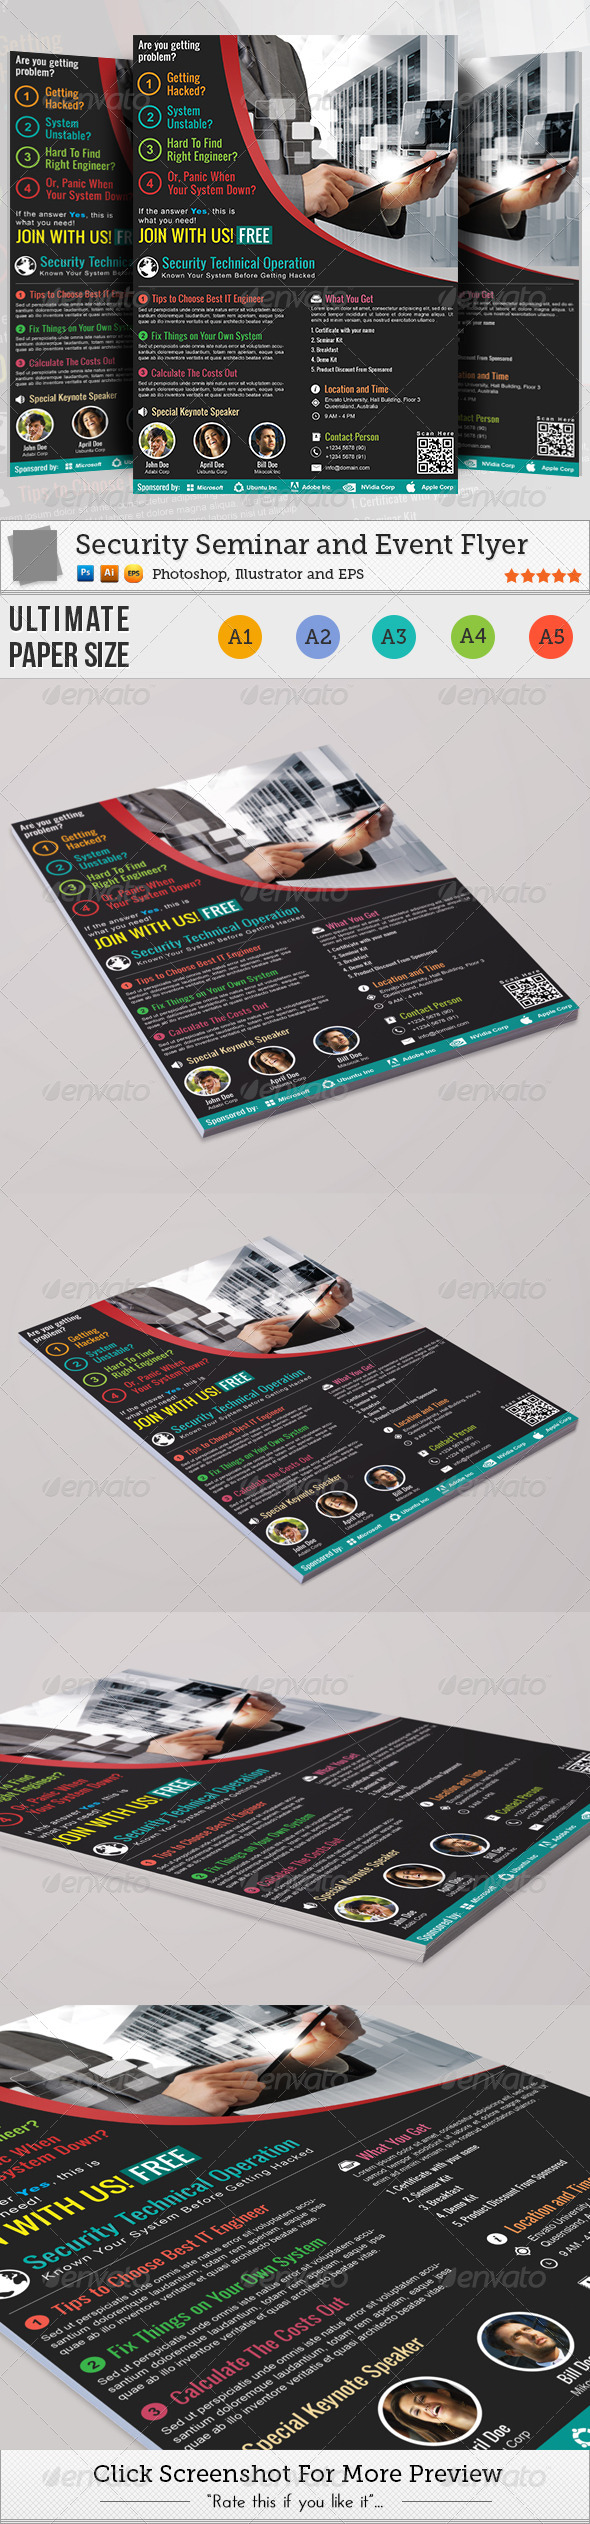 Security Seminar and Event Flyer - Corporate Flyers